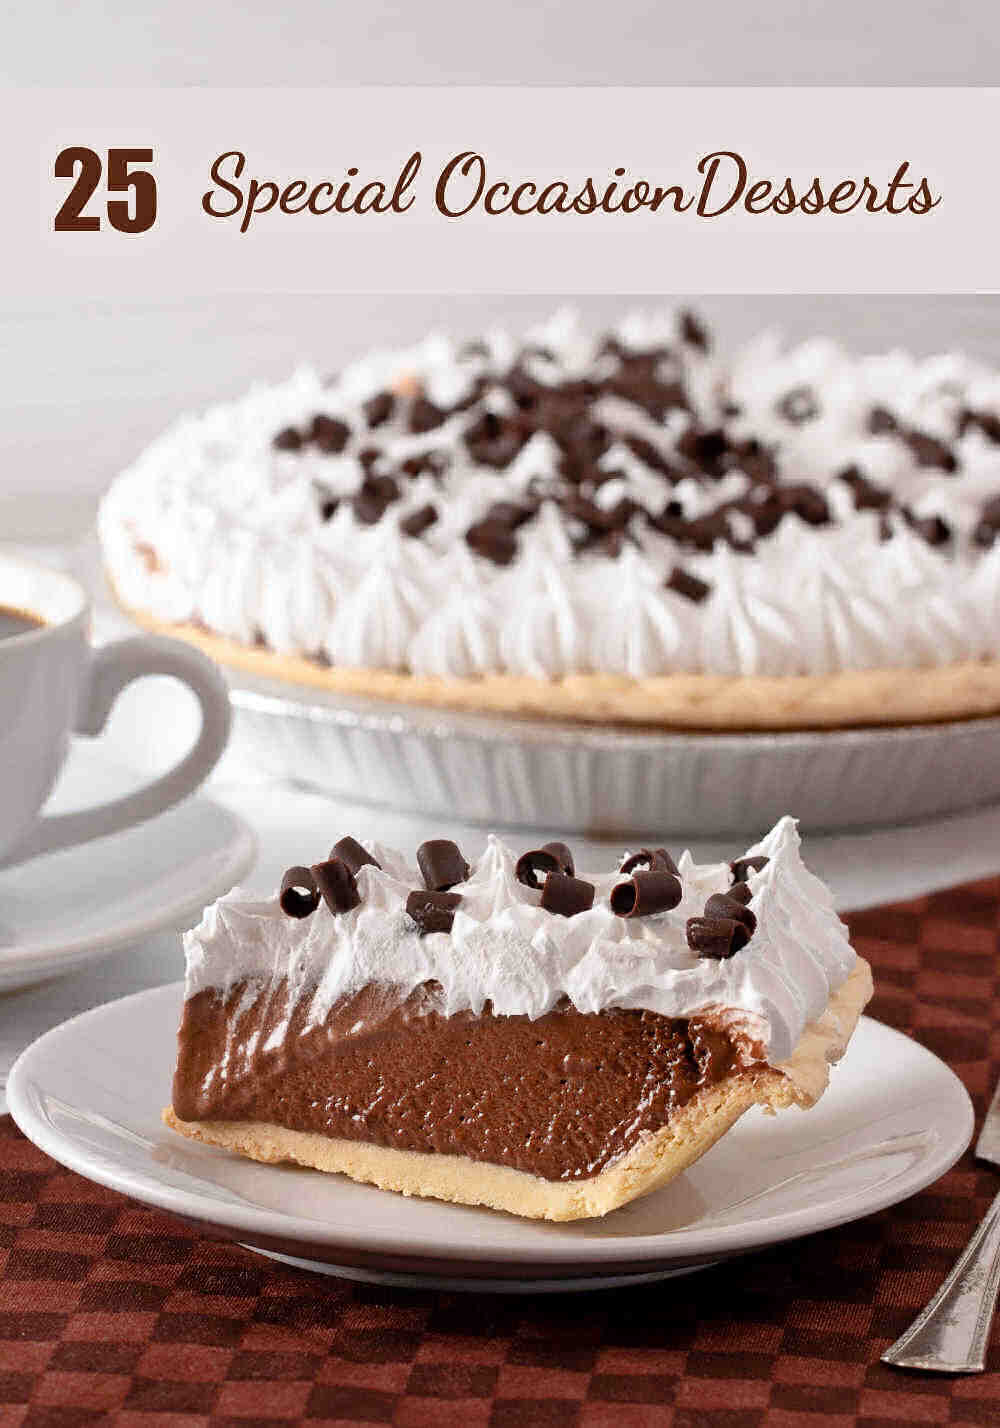 French Chocolate Silk pie with words reading 25 special occasion desserts.